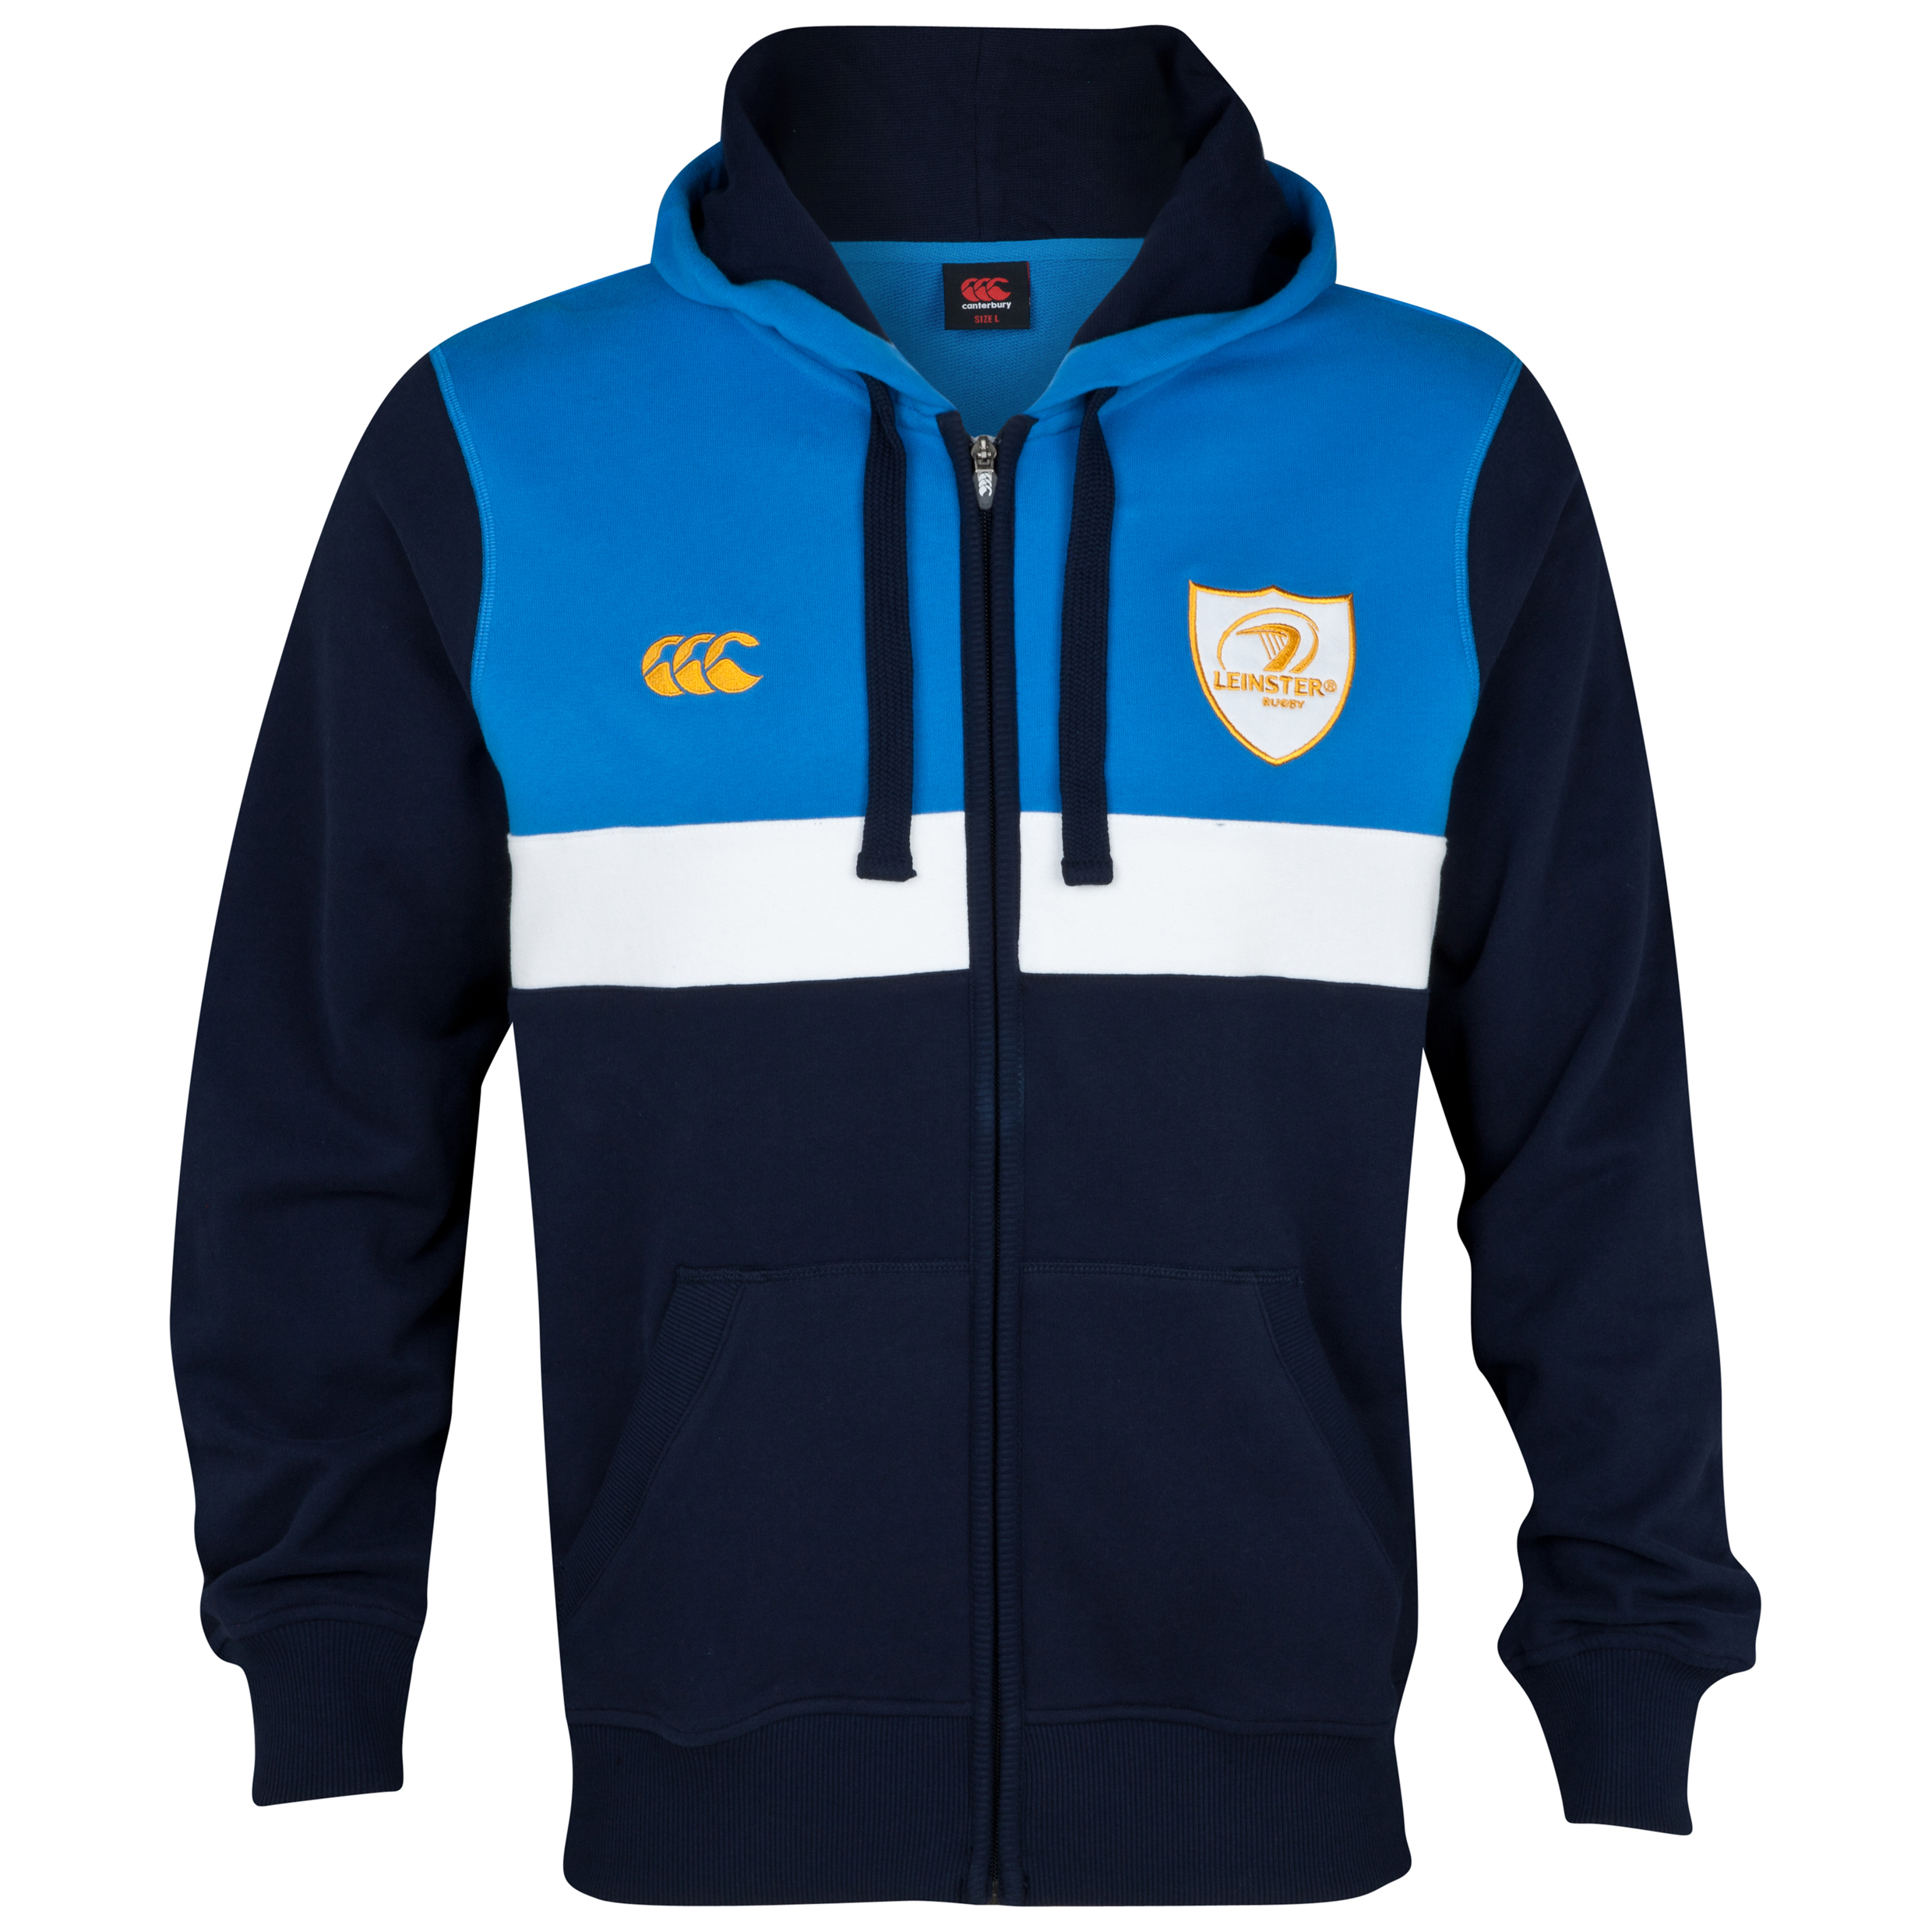 Leinster Full Zip Hooded Sweatshirt - Navy/French Blue